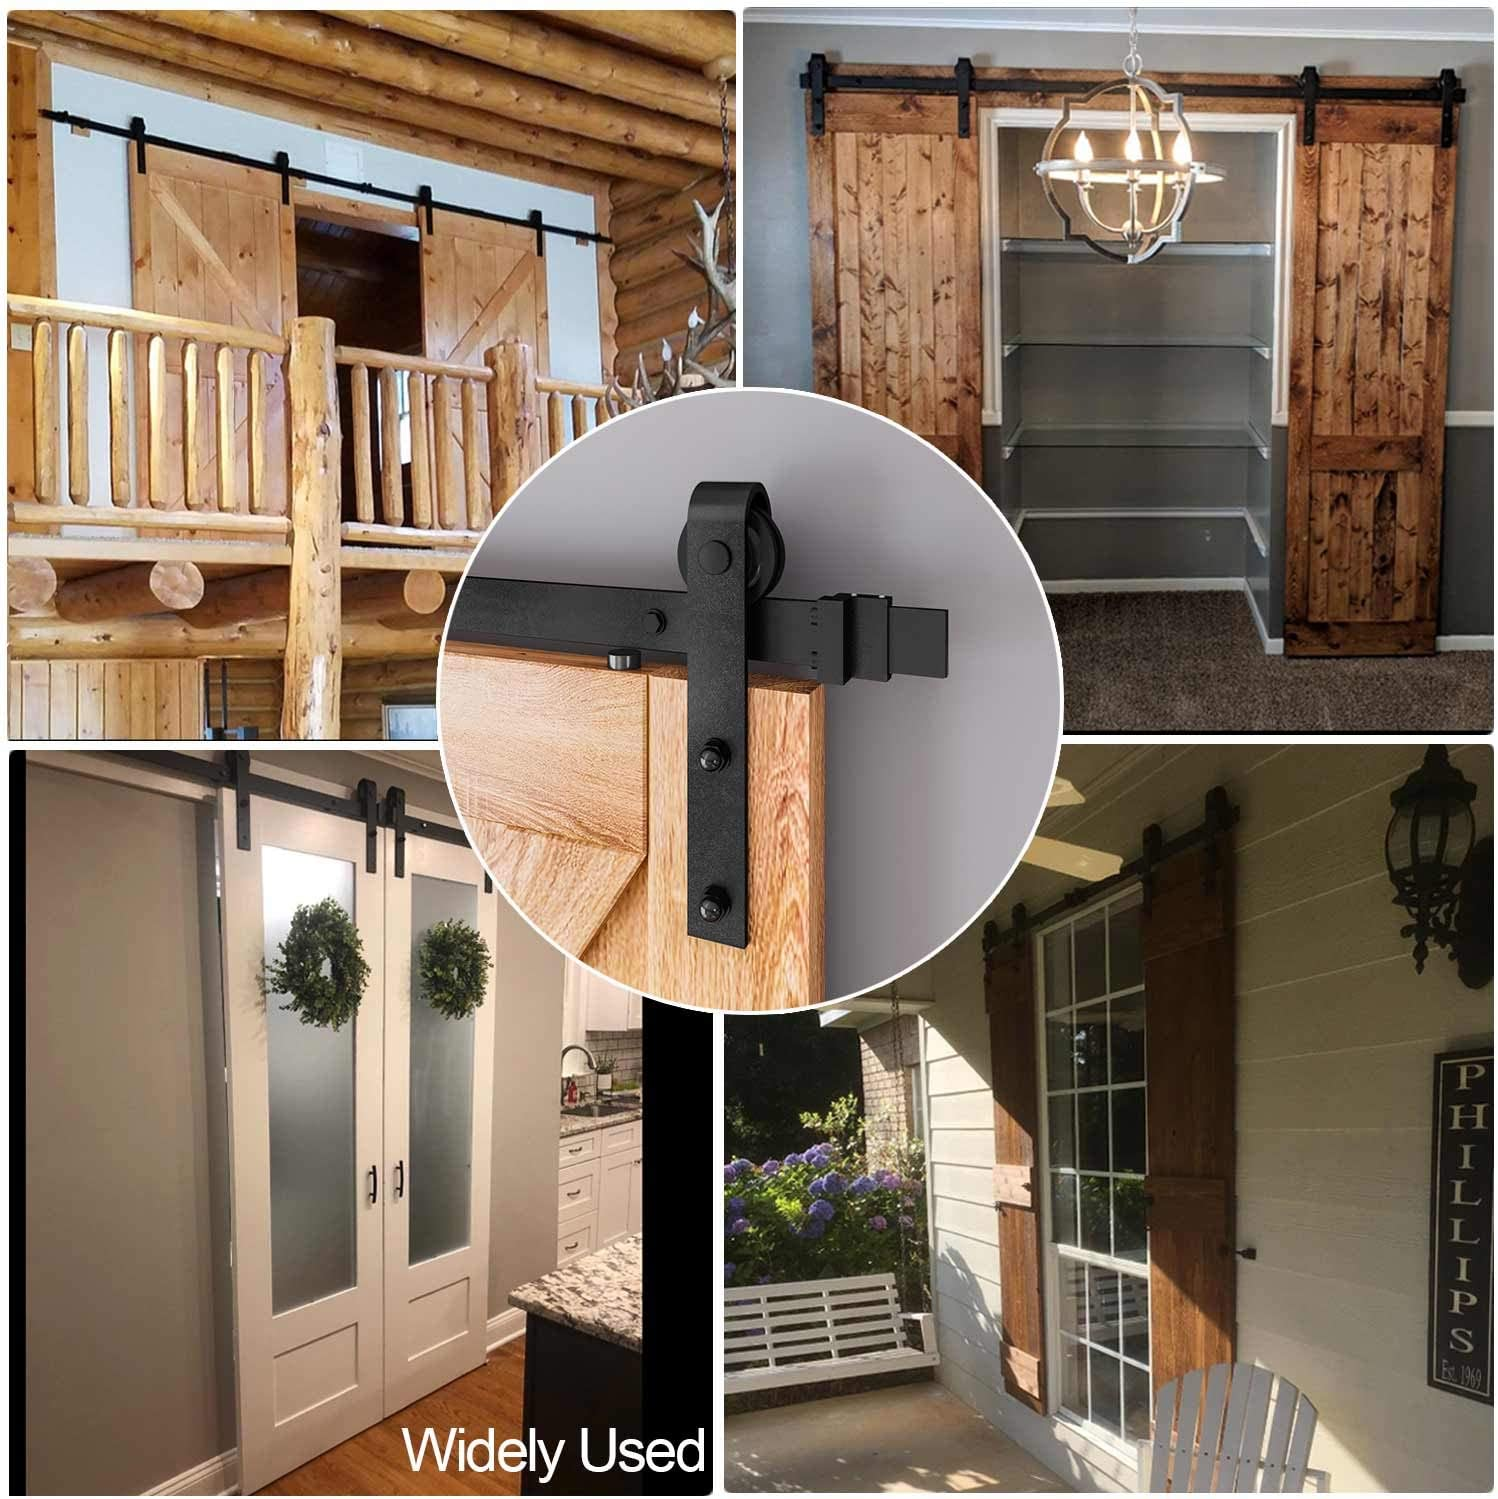 6FT Track Single Door Kit EaseLife 6 FT Heavy Duty Sliding Barn Door Hardware Track Kit,Ultra Hard Sturdy,Slide Smoothly Quietly,Easy Install,Fit 30~36 Wide Door